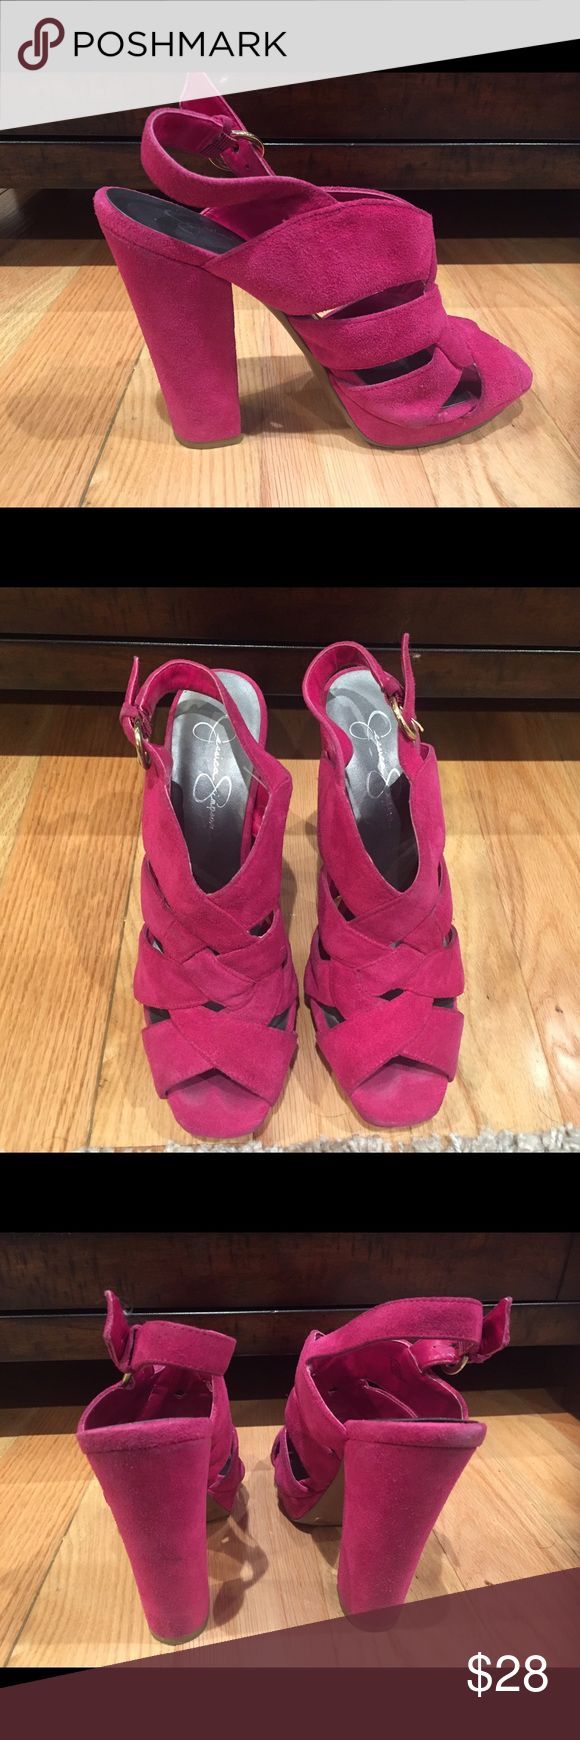 Hot Pink Shoes by Jessica Simpson Selling my hot pink shoes by Jessica Simpson. I bought these from a previous owner and only wore them twice. They're absolutely adorable. Selling them because I have no room for them and I don't wear them anymore. Jessica Simpson Shoes Heels